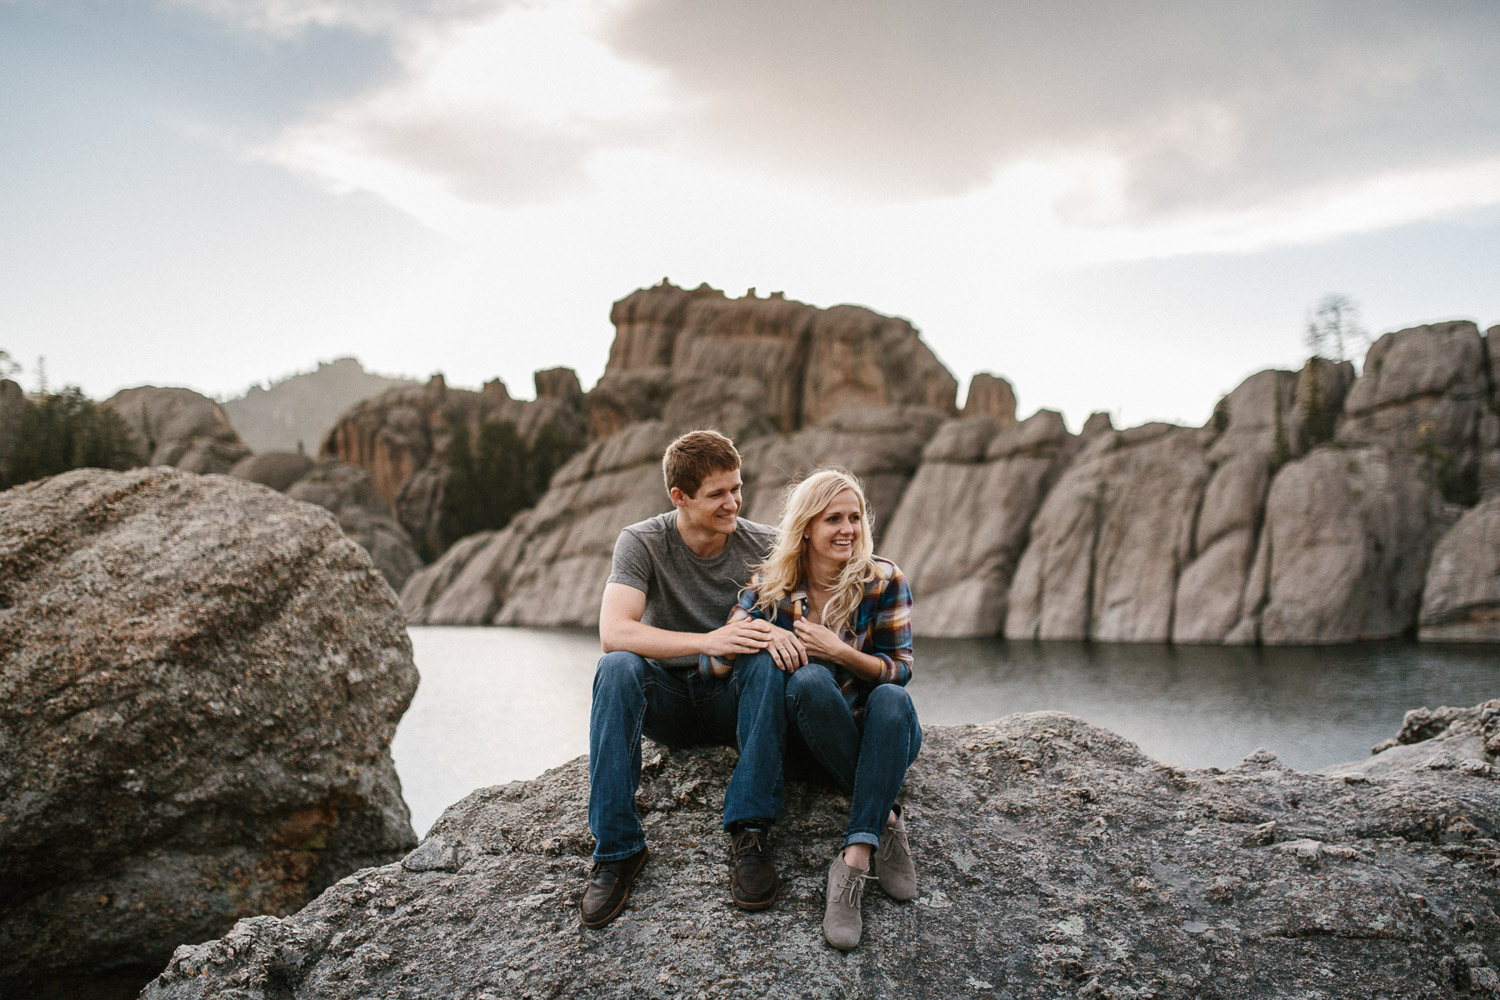 SiouxFalls_BlackHills_Adventure_Engagement_Wedding_Photographer_60.jpg